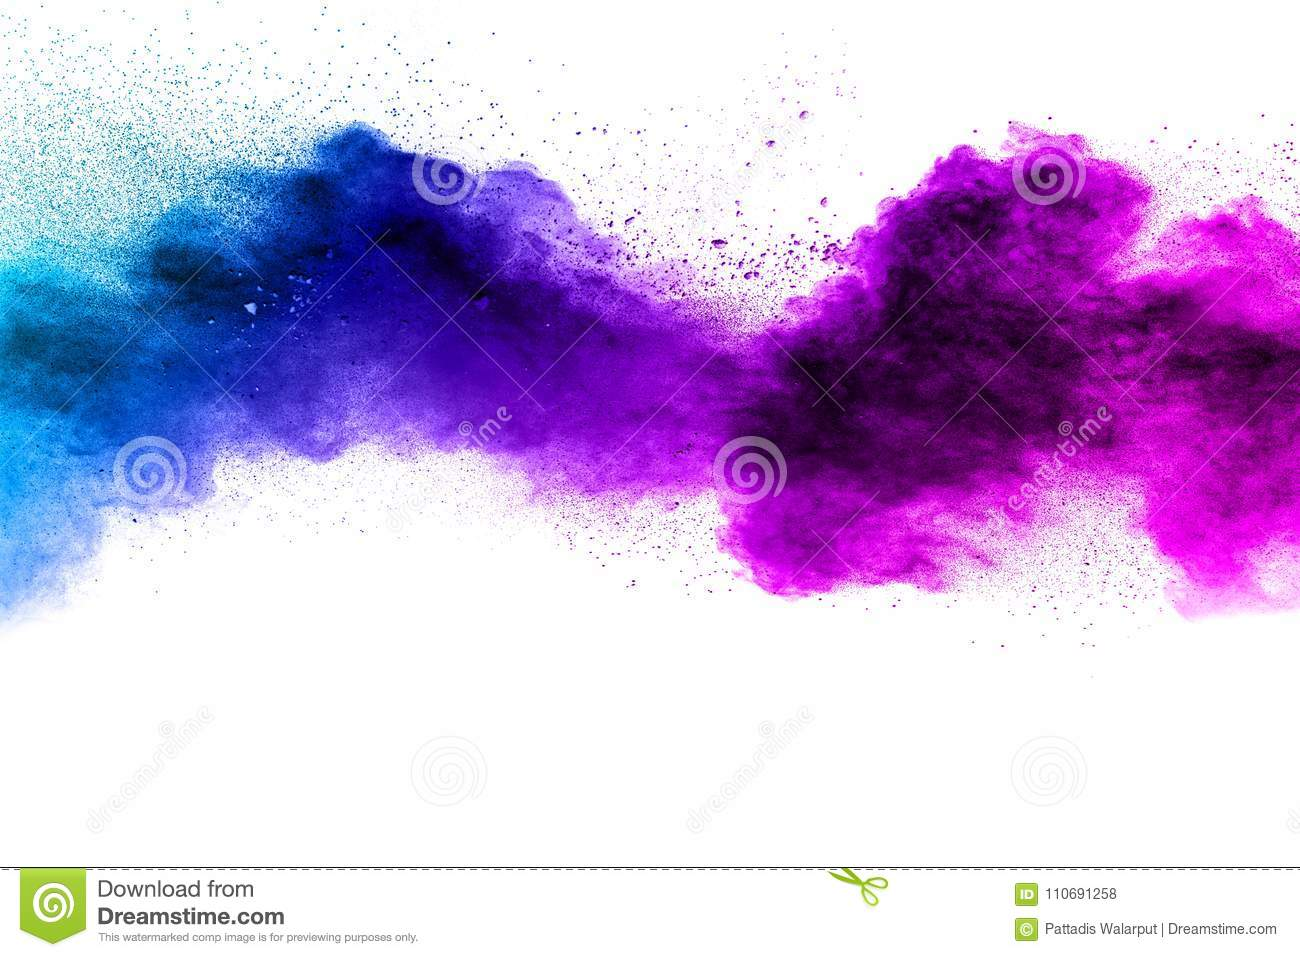 Blue-Purple color powder explosion cloud isolated on white background.